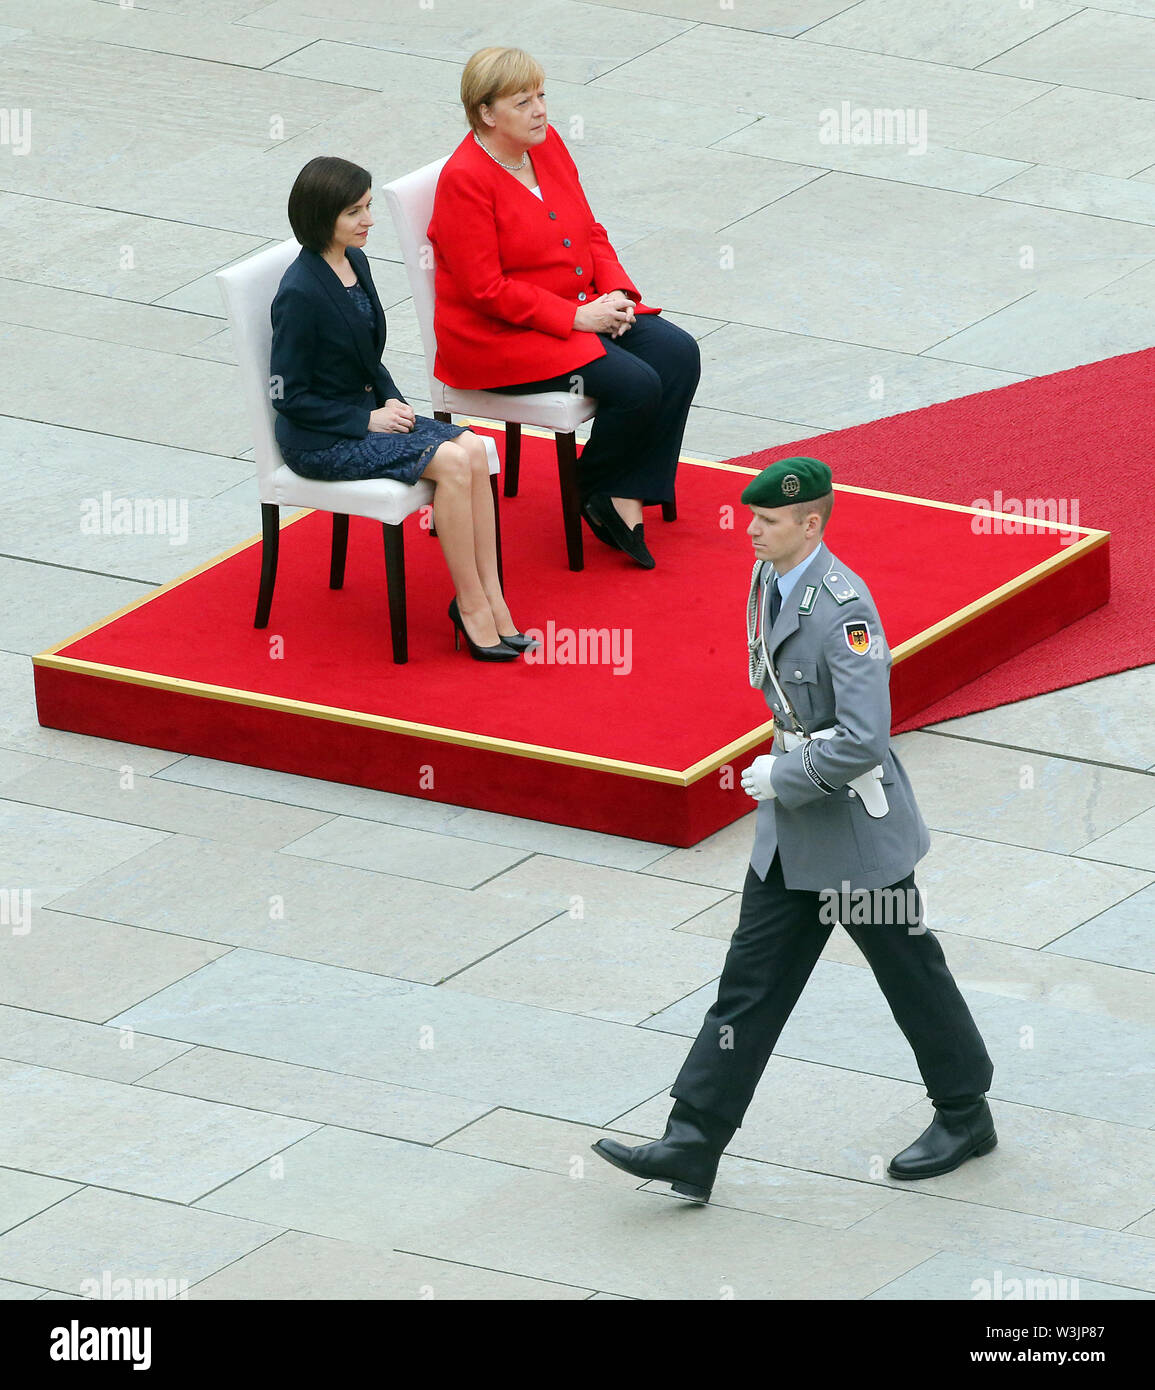 Berlin, Germany. 16th July, 2019. Federal Chancellor Angela Merkel (CDU, r) receives Moldovan Prime Minister Maia Sandu in the Federal Chancellery with military honours and follows the national anthems playing while sitting with her. After several tremors during public appearances such as this, Merkel performed the ceremony for the first time last week, partly sitting down. Credit: Wolfgang Kumm/dpa/Alamy Live News - Stock Image